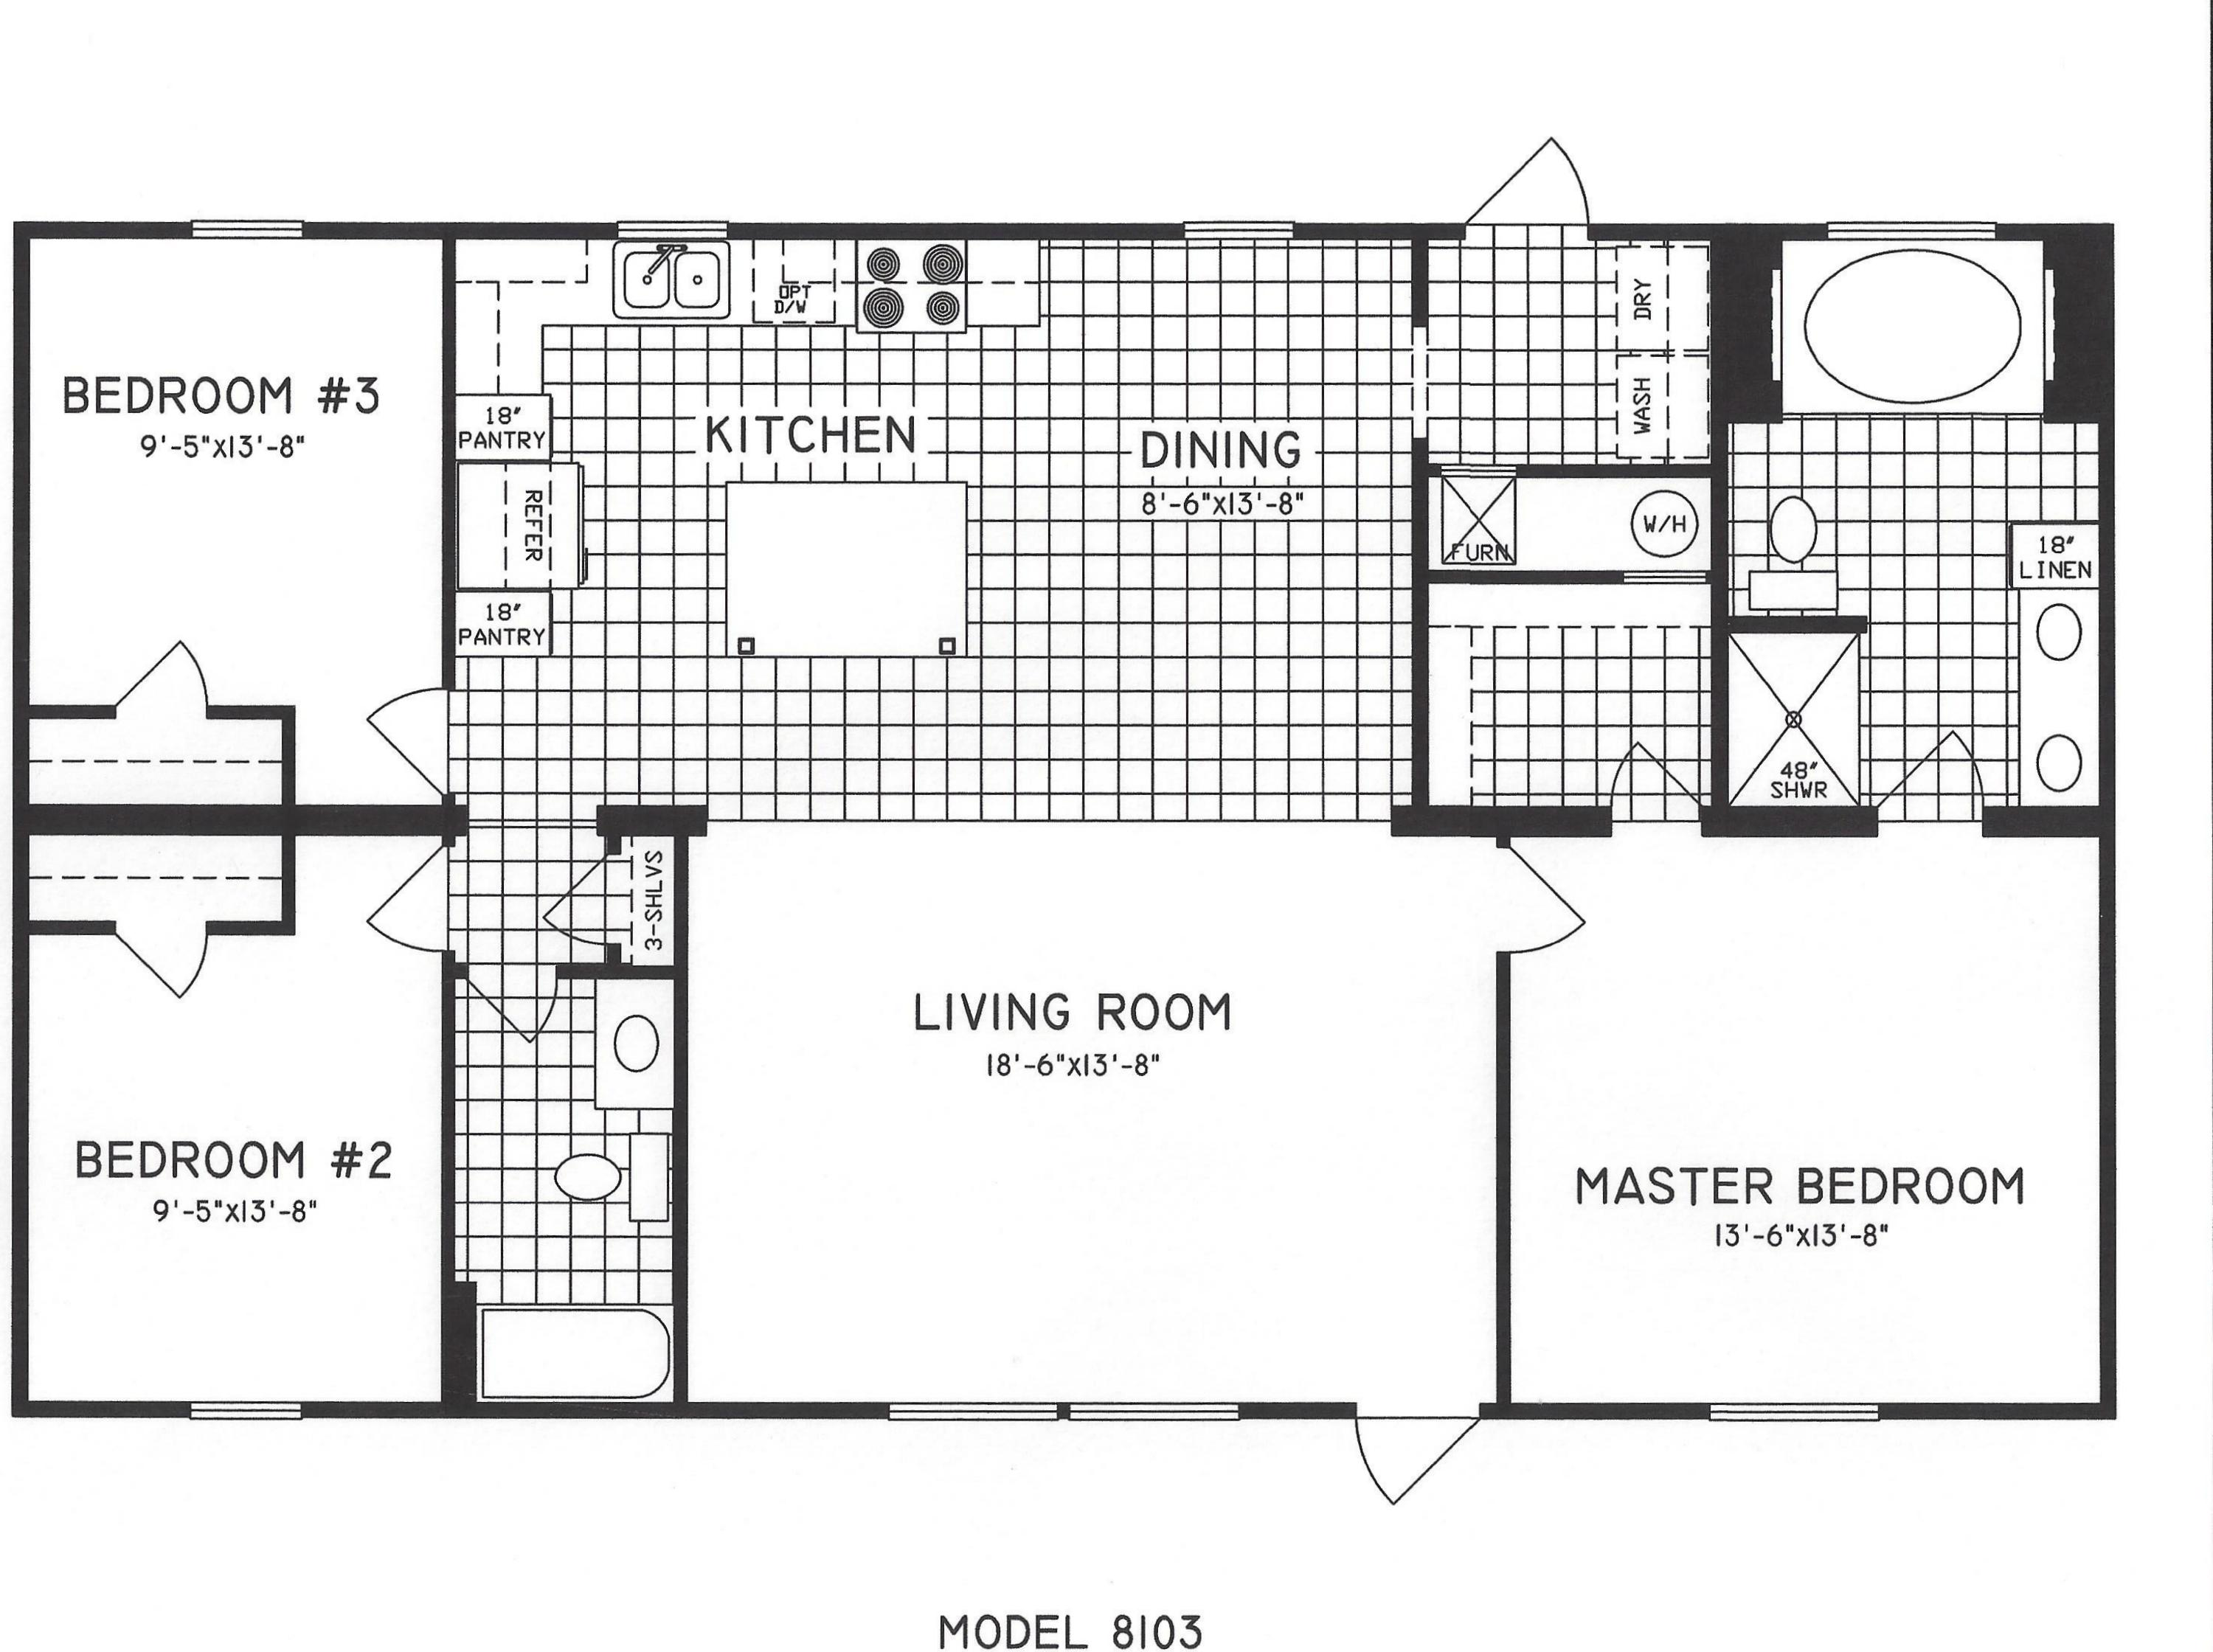 3 Bedroom 2 Bath House Plans 3 Bedroom Floor Plan C8103  Hawks Homes  Manufactured .